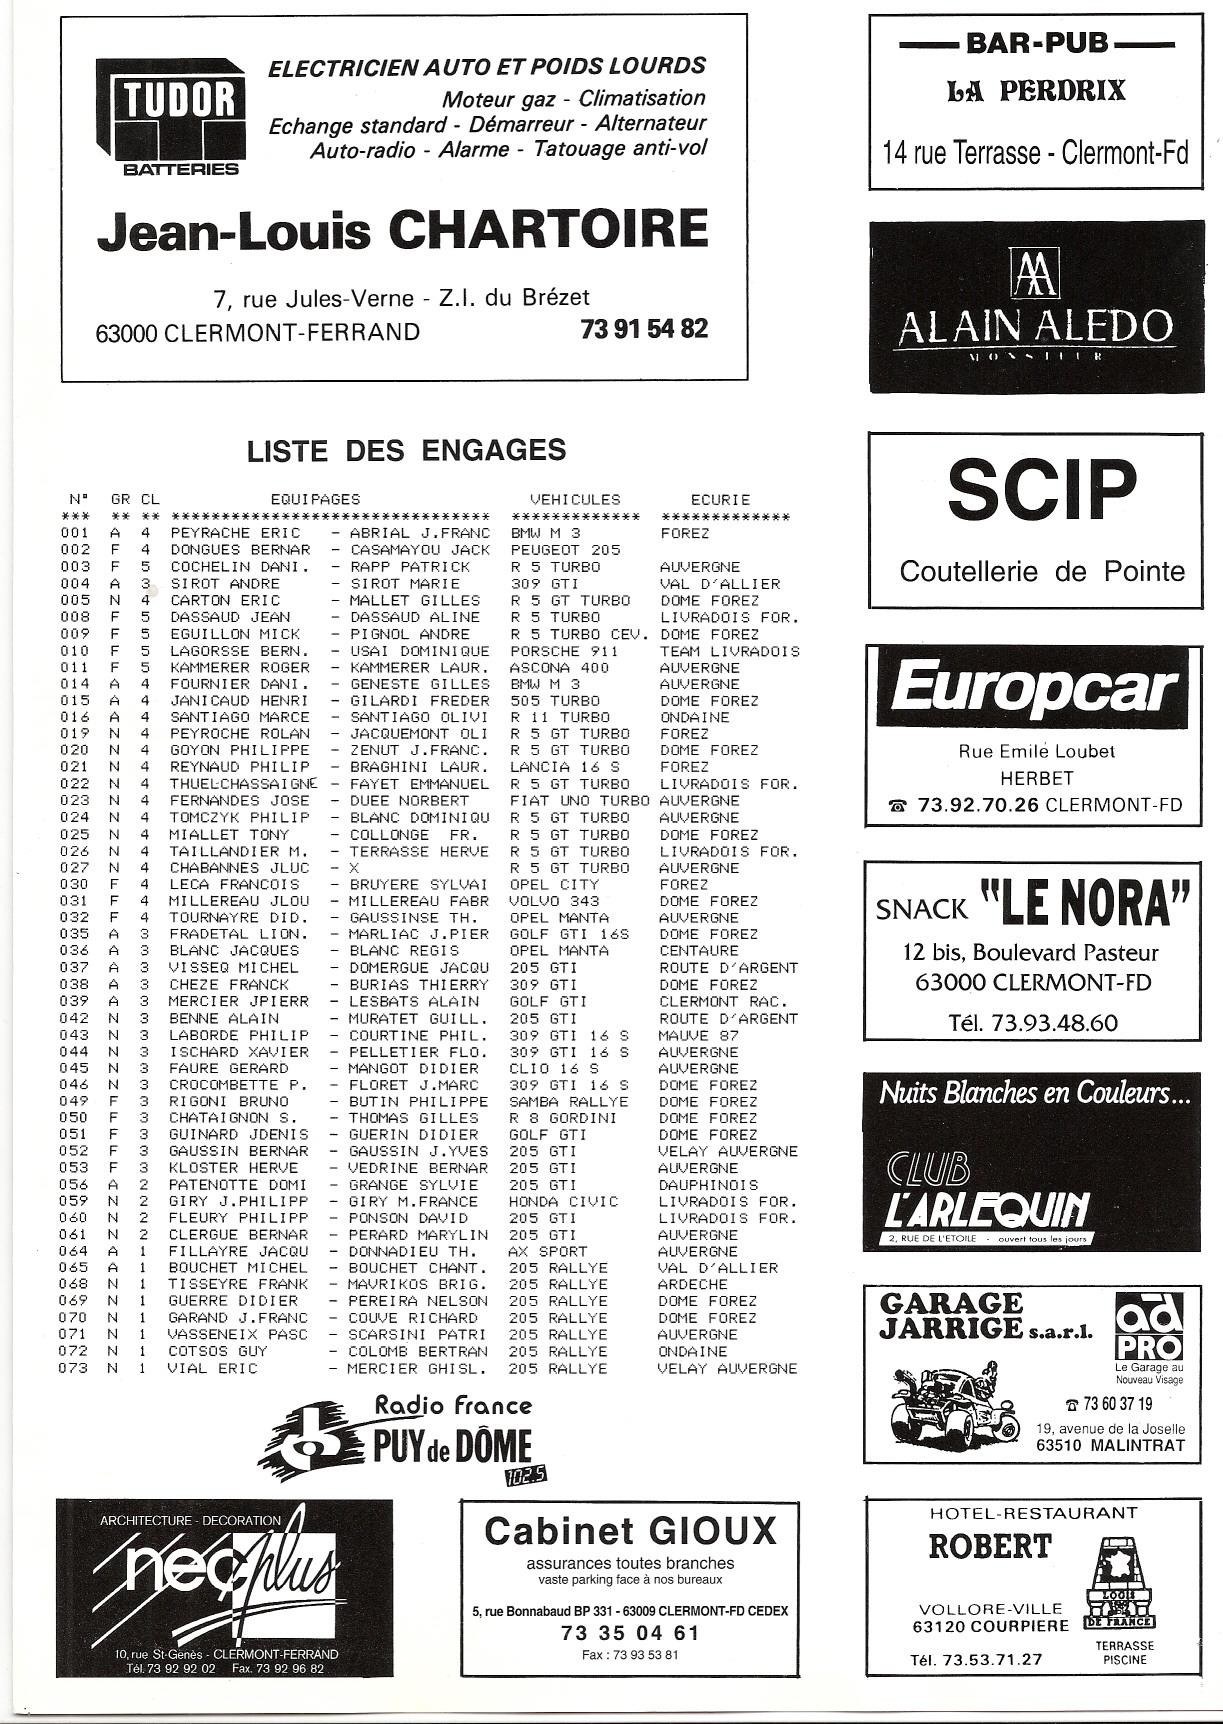 monts dome 1992-page-001